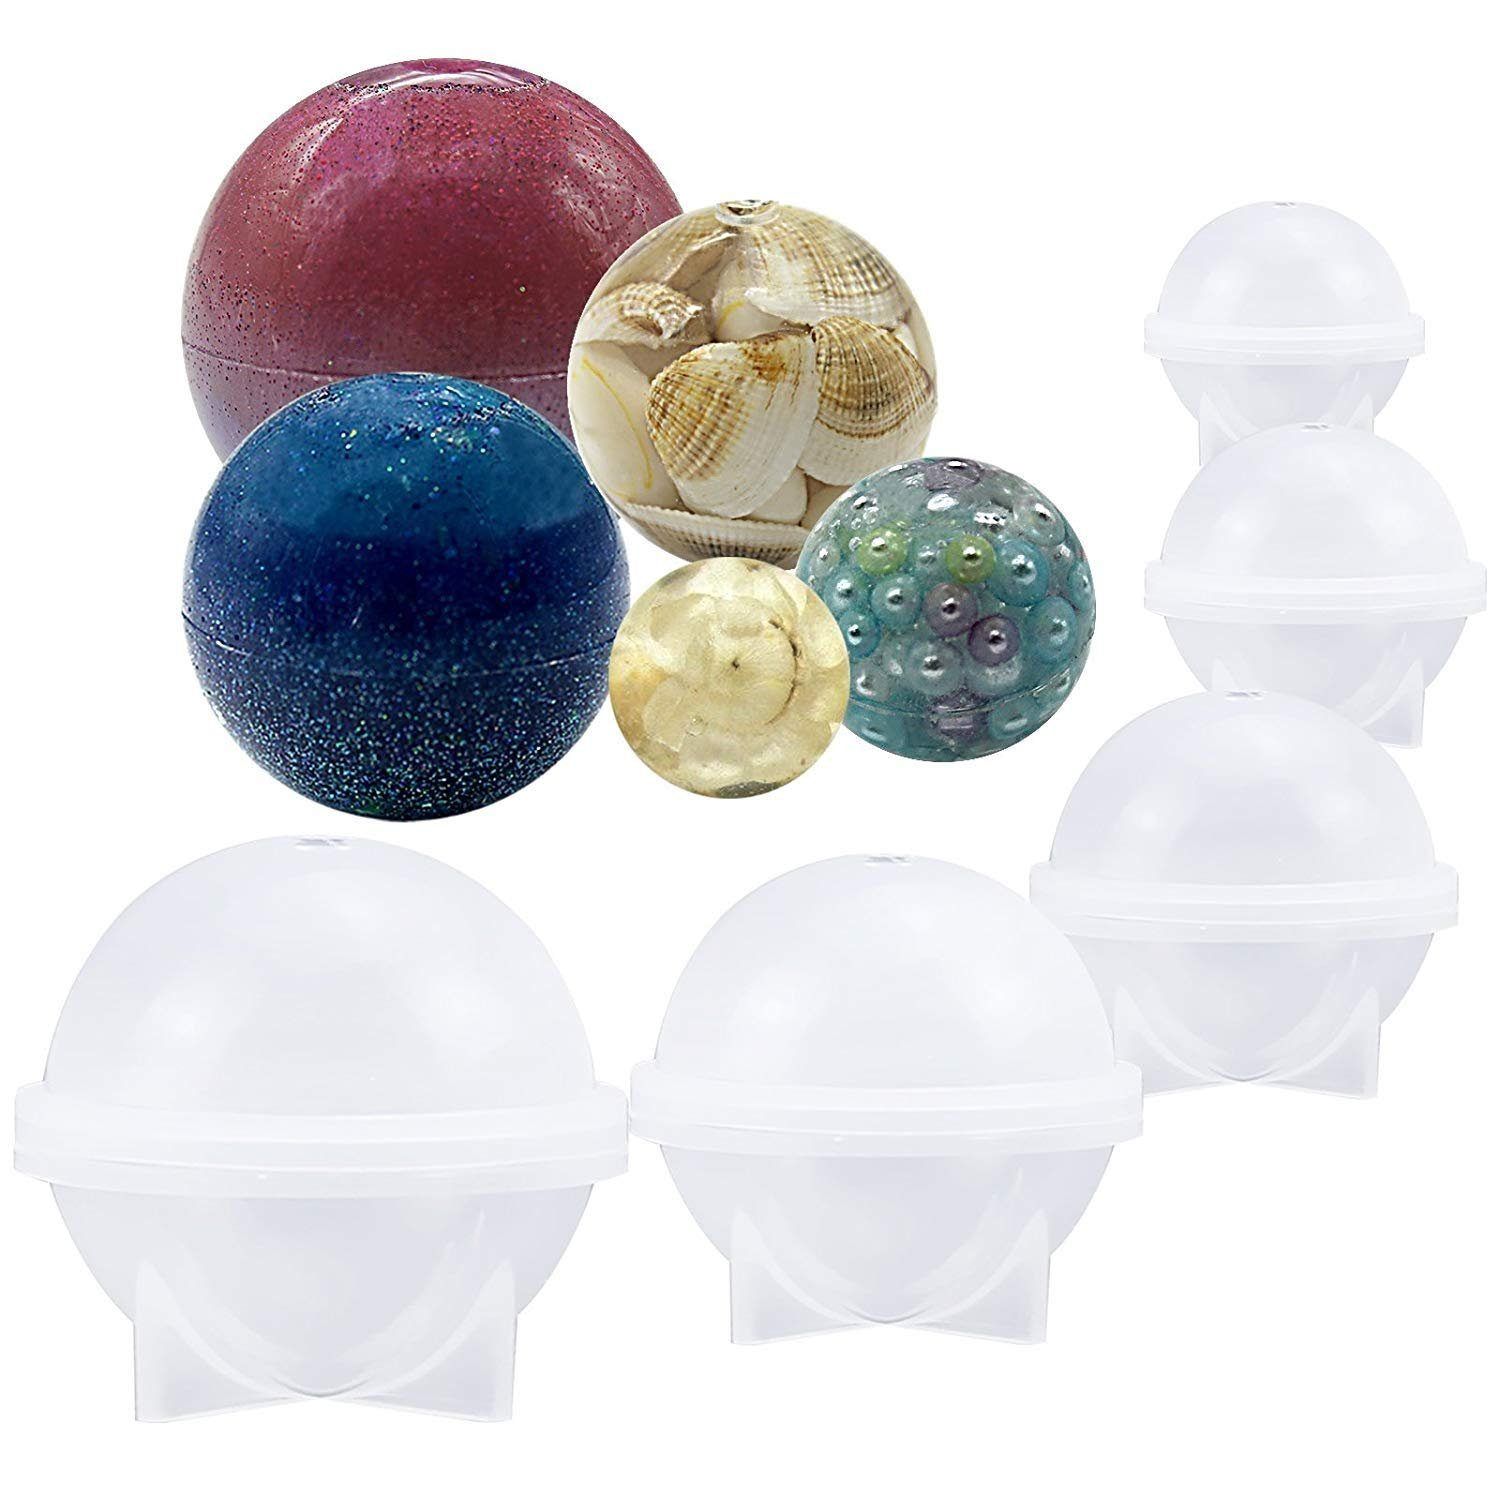 5Pcs/Set Ball Orb Sphere Paperweight Silicone Mold, for Polymer Clay, Crafting, Resin Epoxy, Jewelry Making Somtis